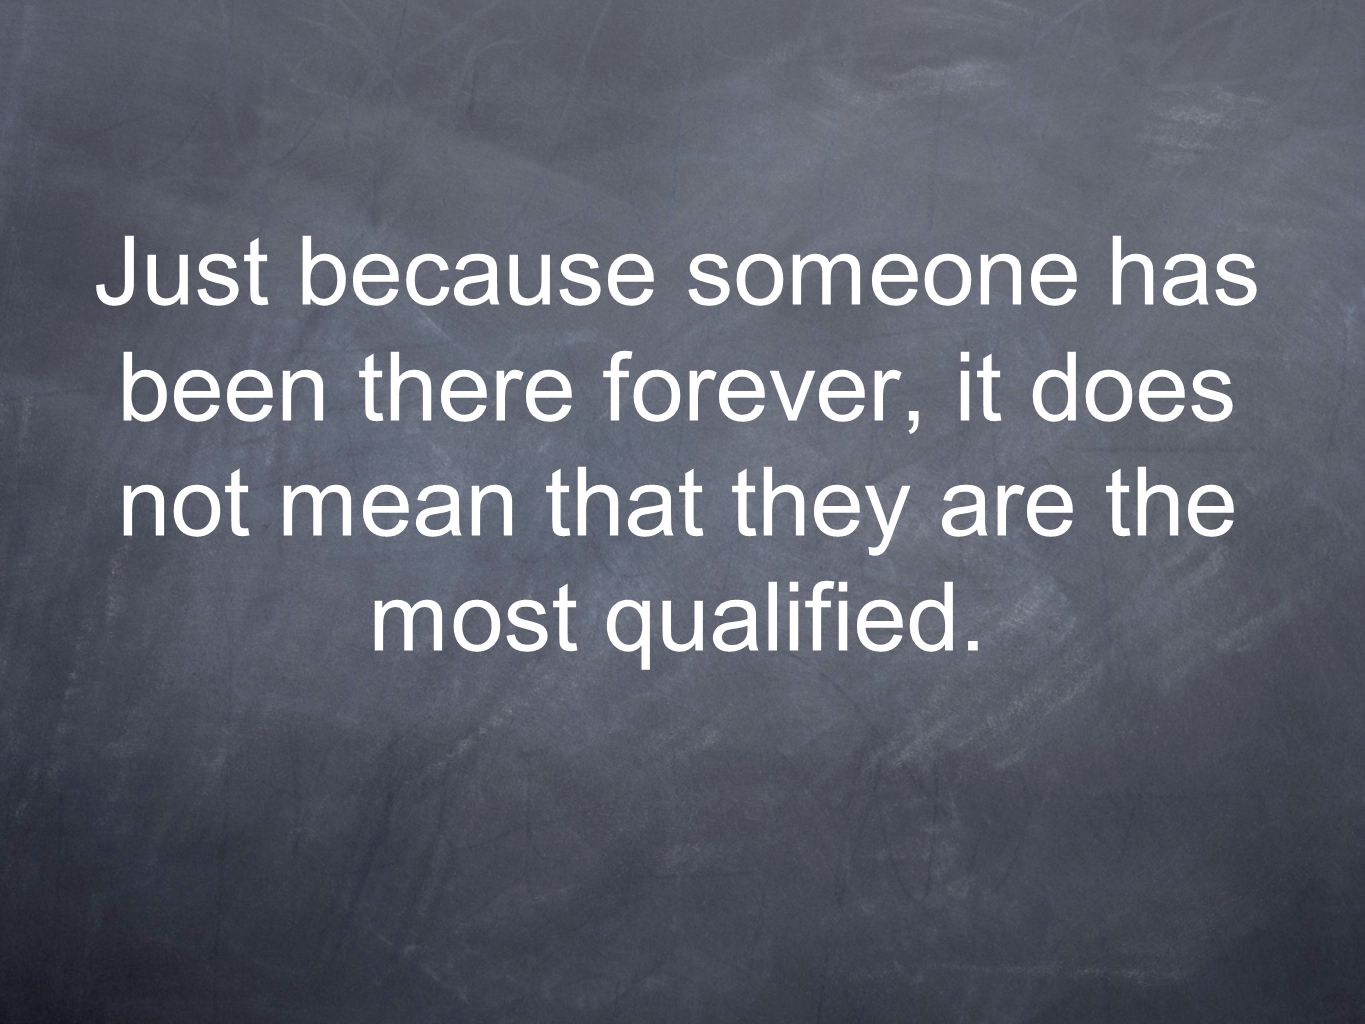 Just because someone has been there forever, it does not mean that they are the most qualified.